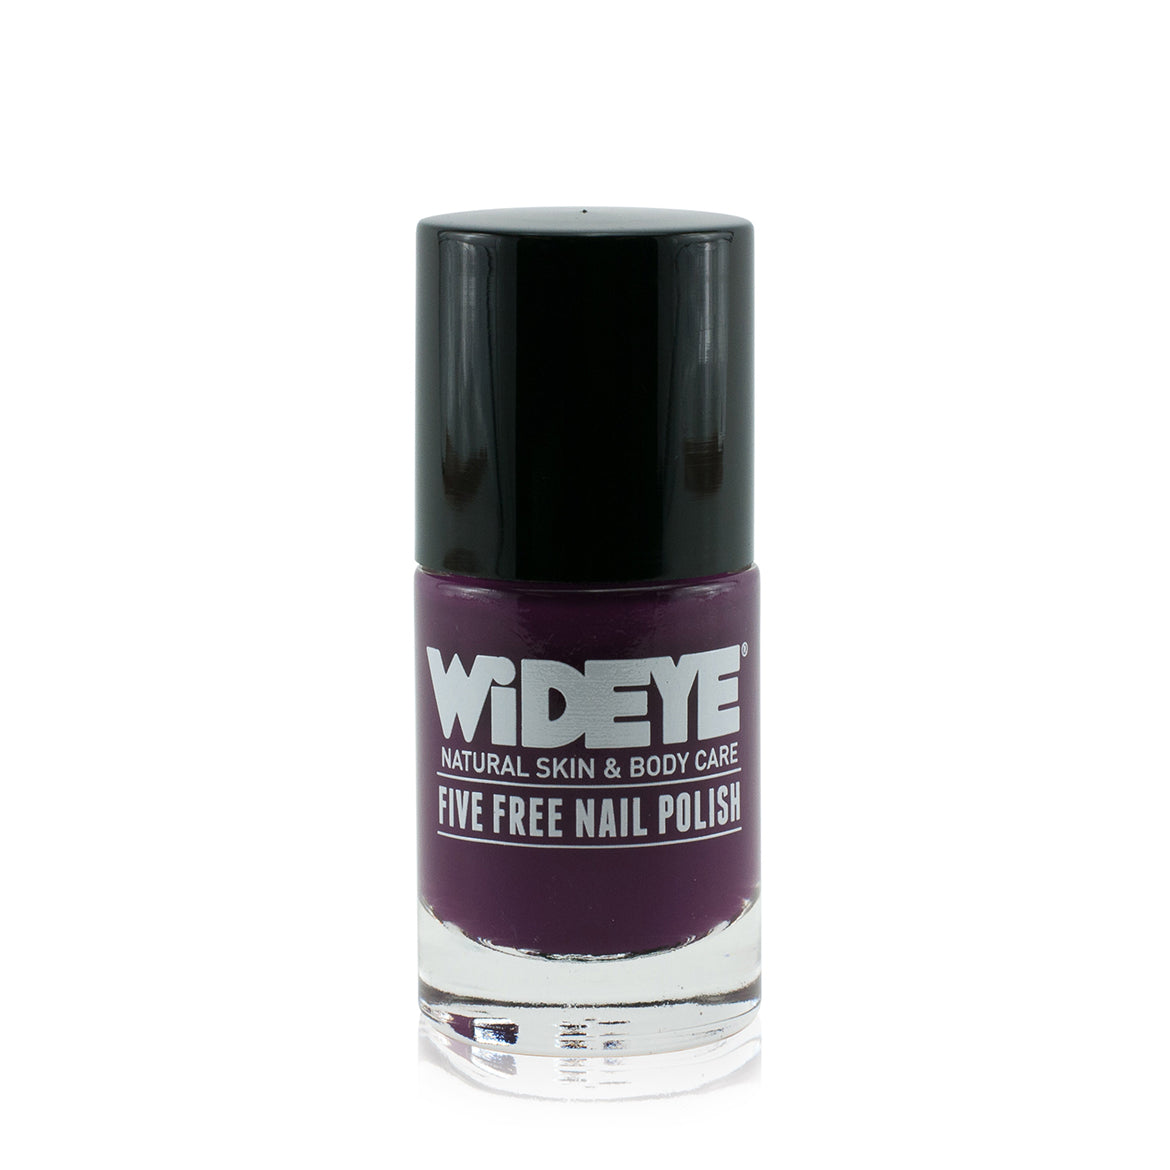 Dark purple nail varnish in glass bottle by WiDEYE